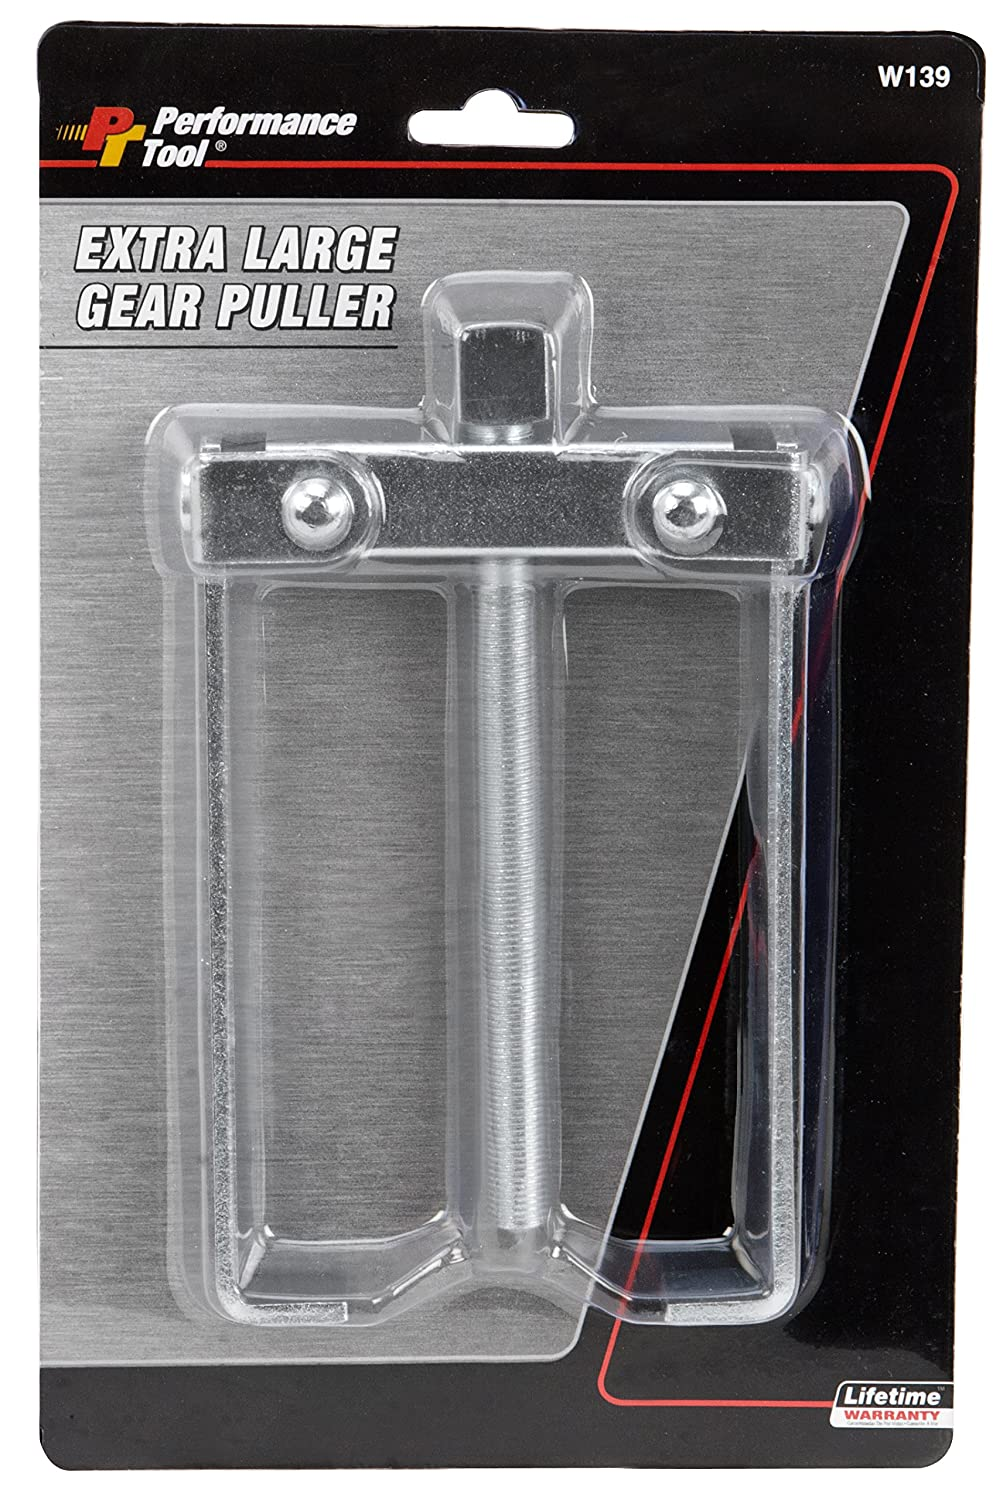 Performance Tool W139 8' 2 Jaw Gear Puller, NULL Wilmar Corporation